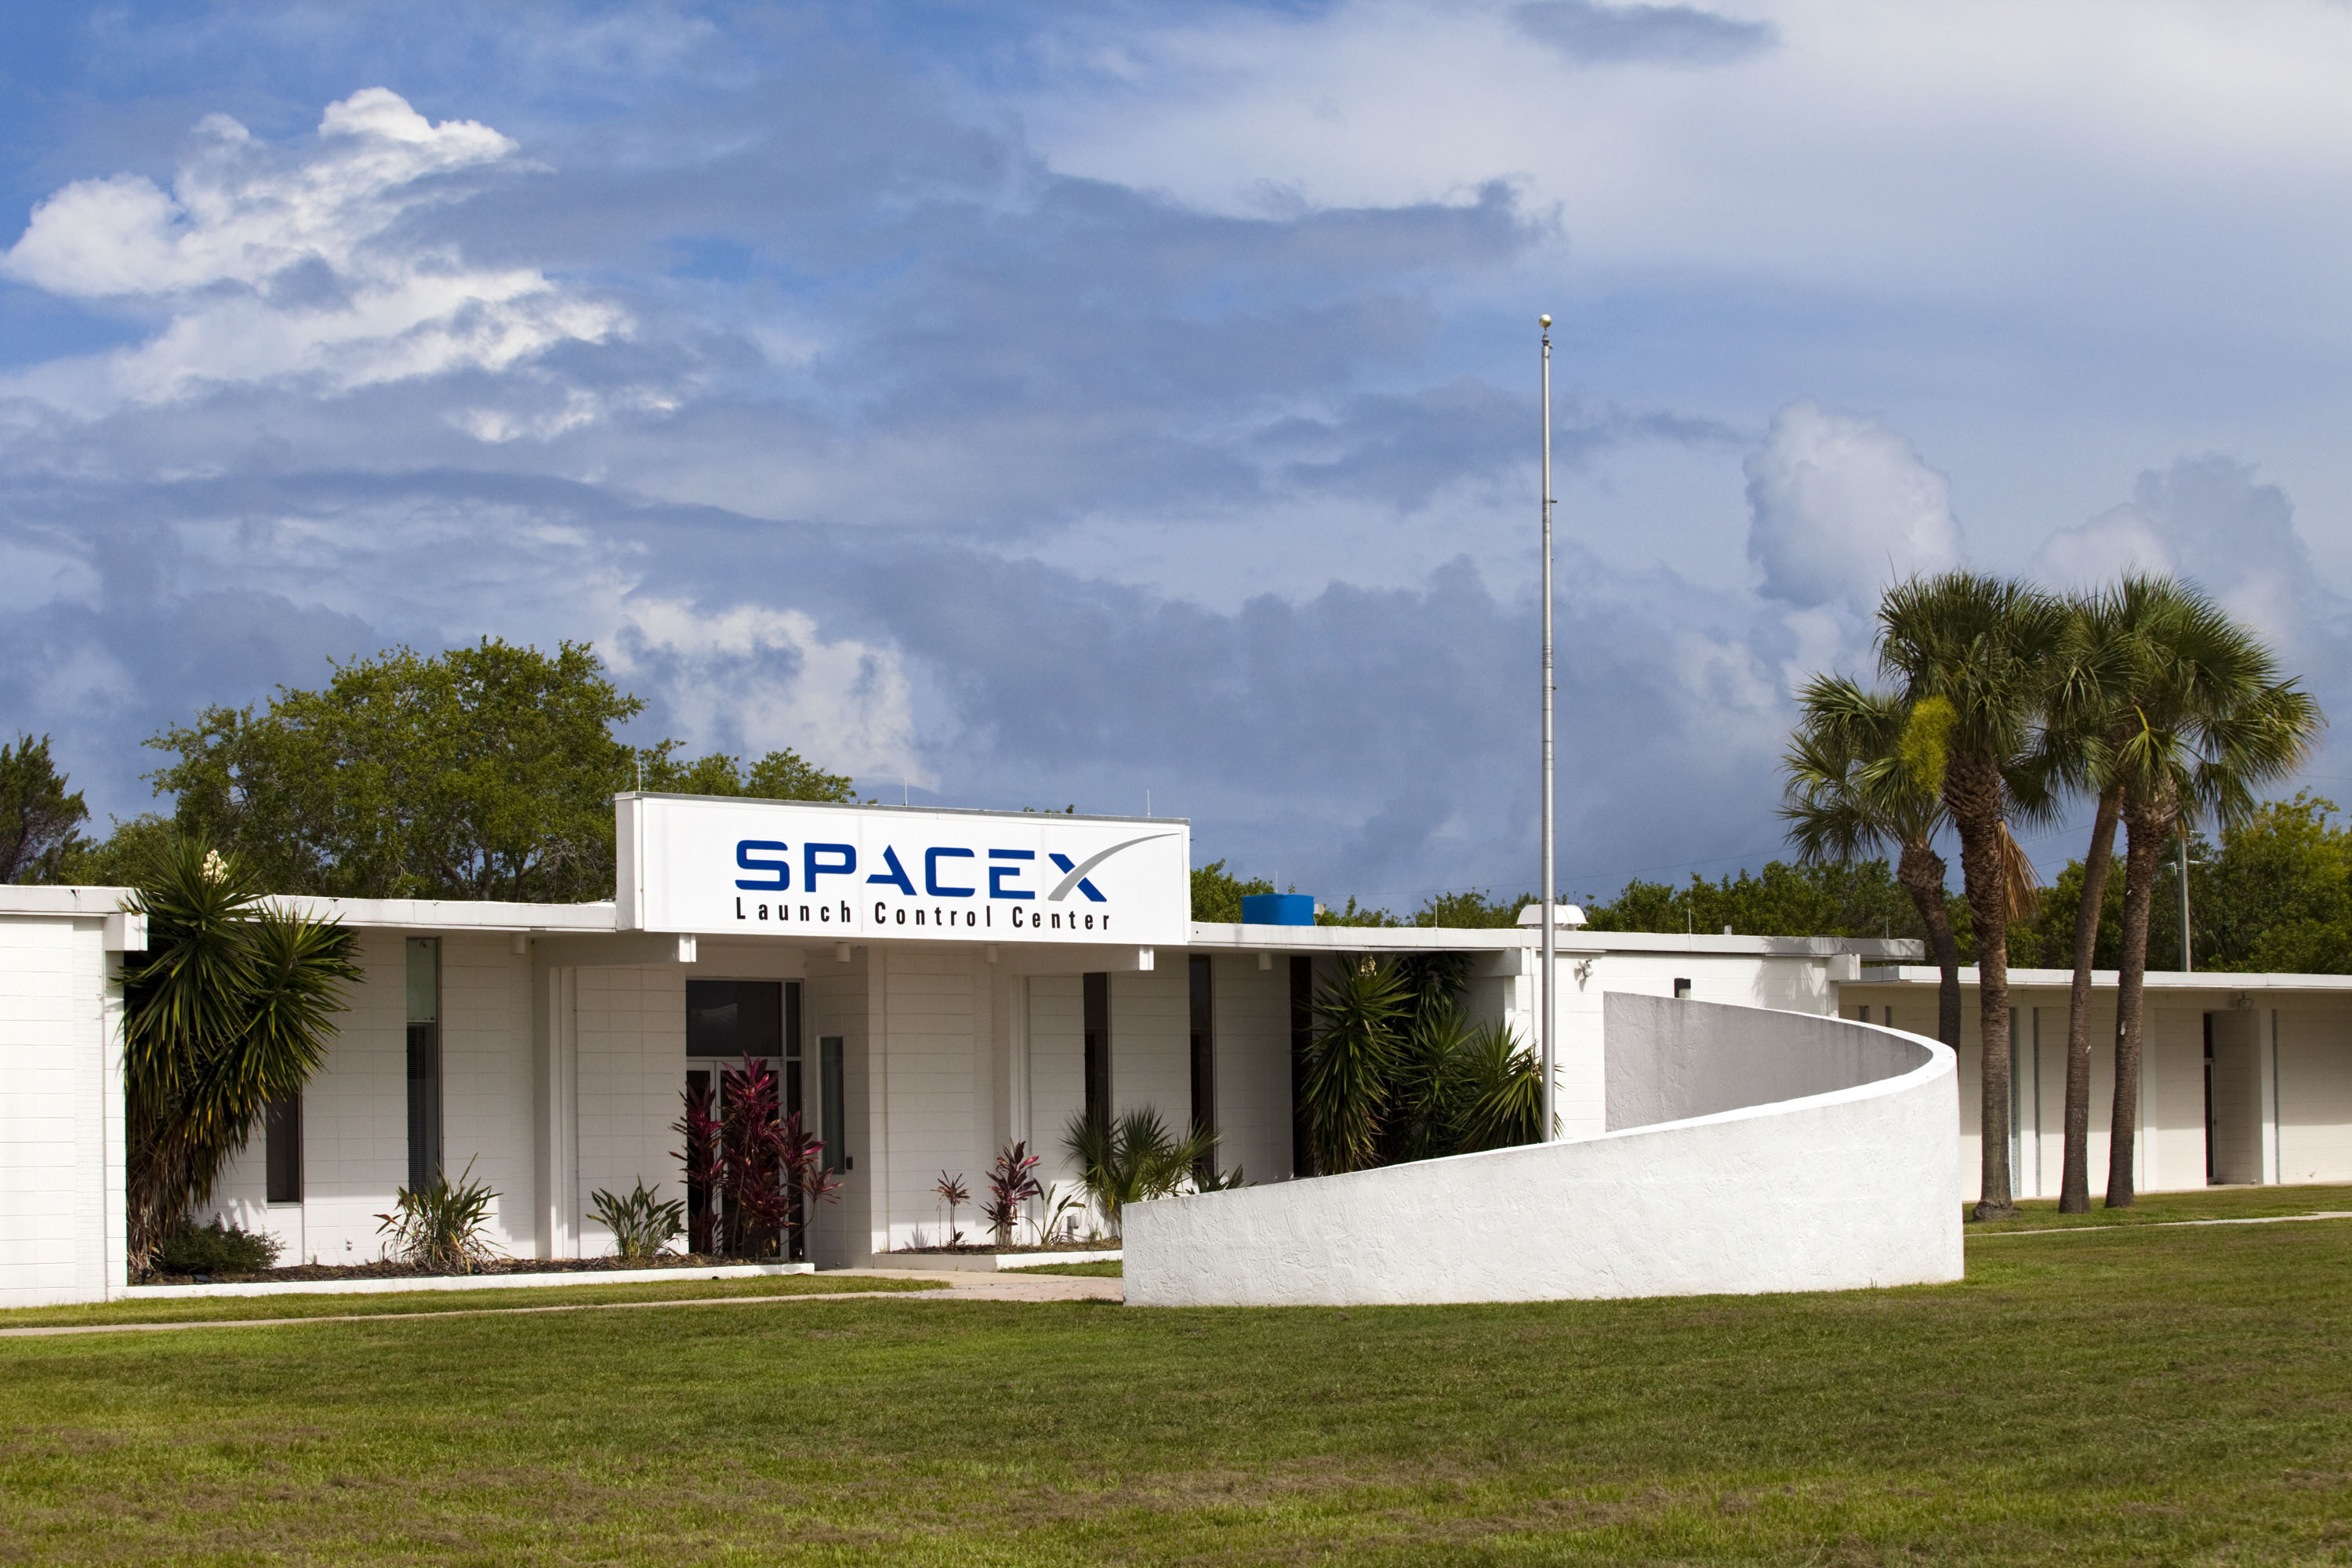 spacex launch control center - photo #23